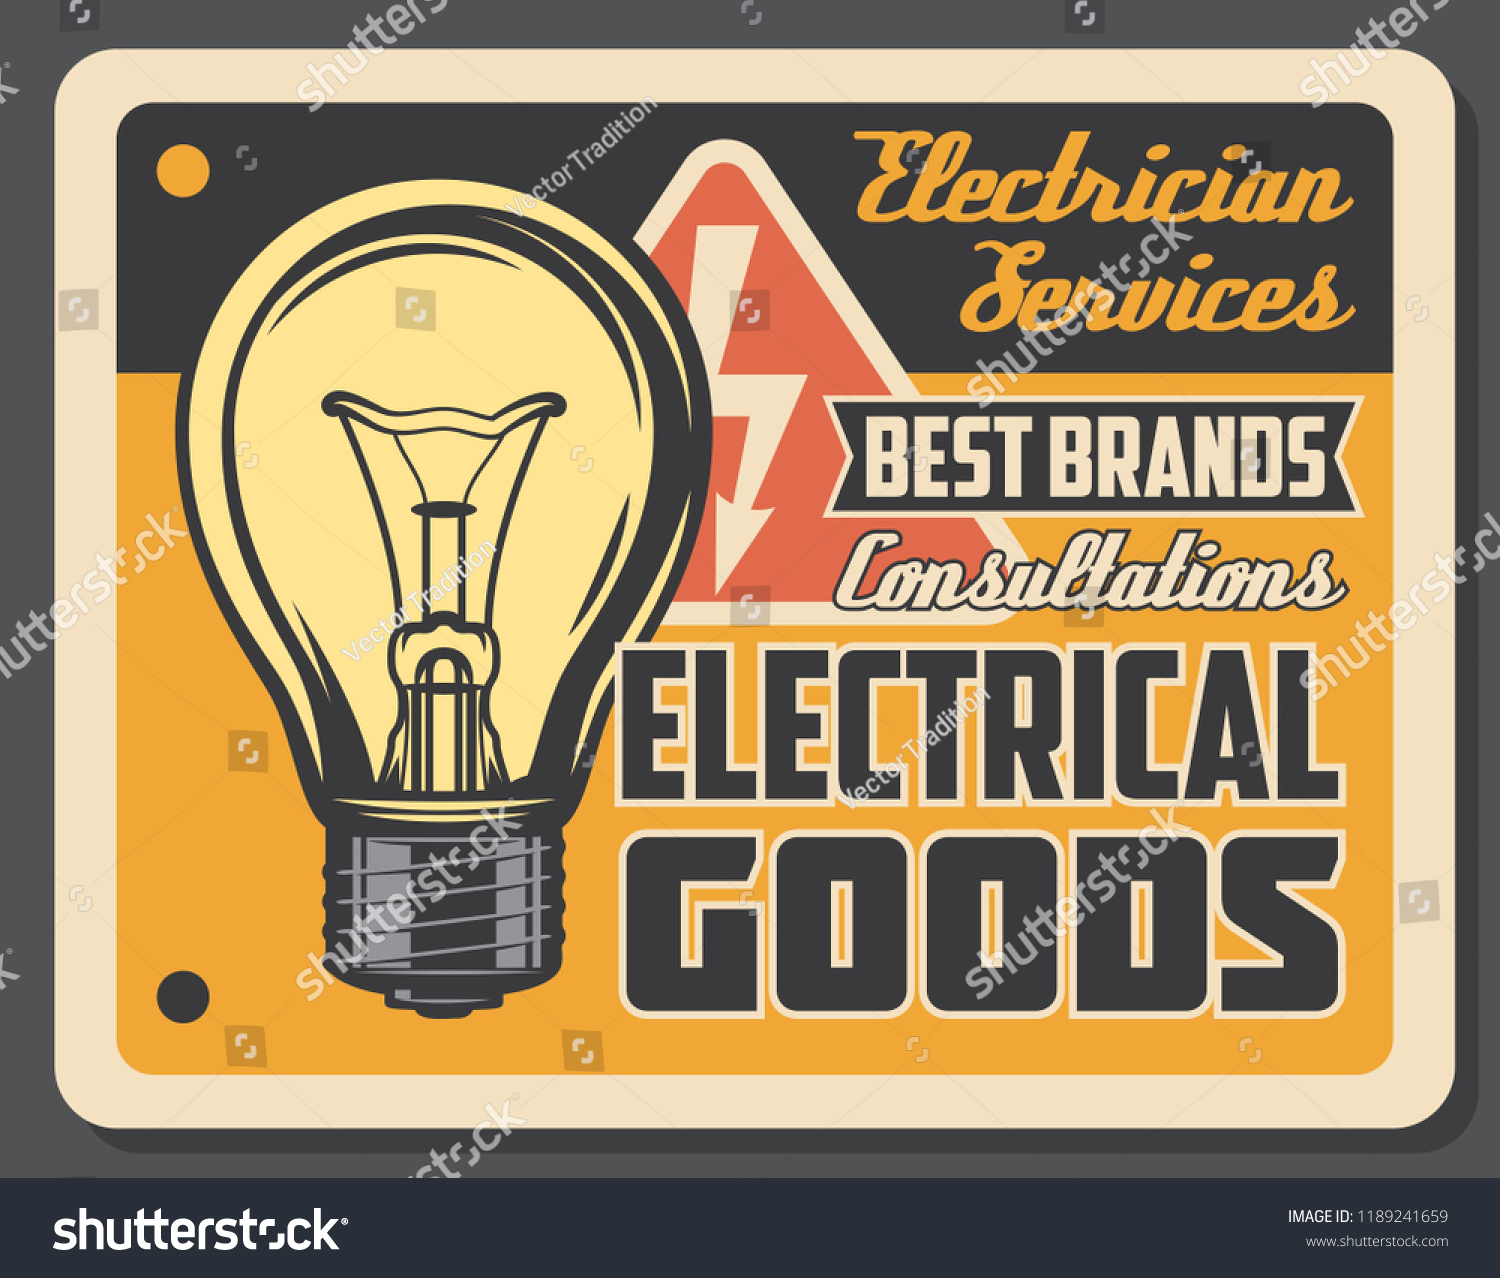 Electrician Services Electrical Goods Retro Poster Stock Vector Wiring A Light Bulb And Electricity Sign Works